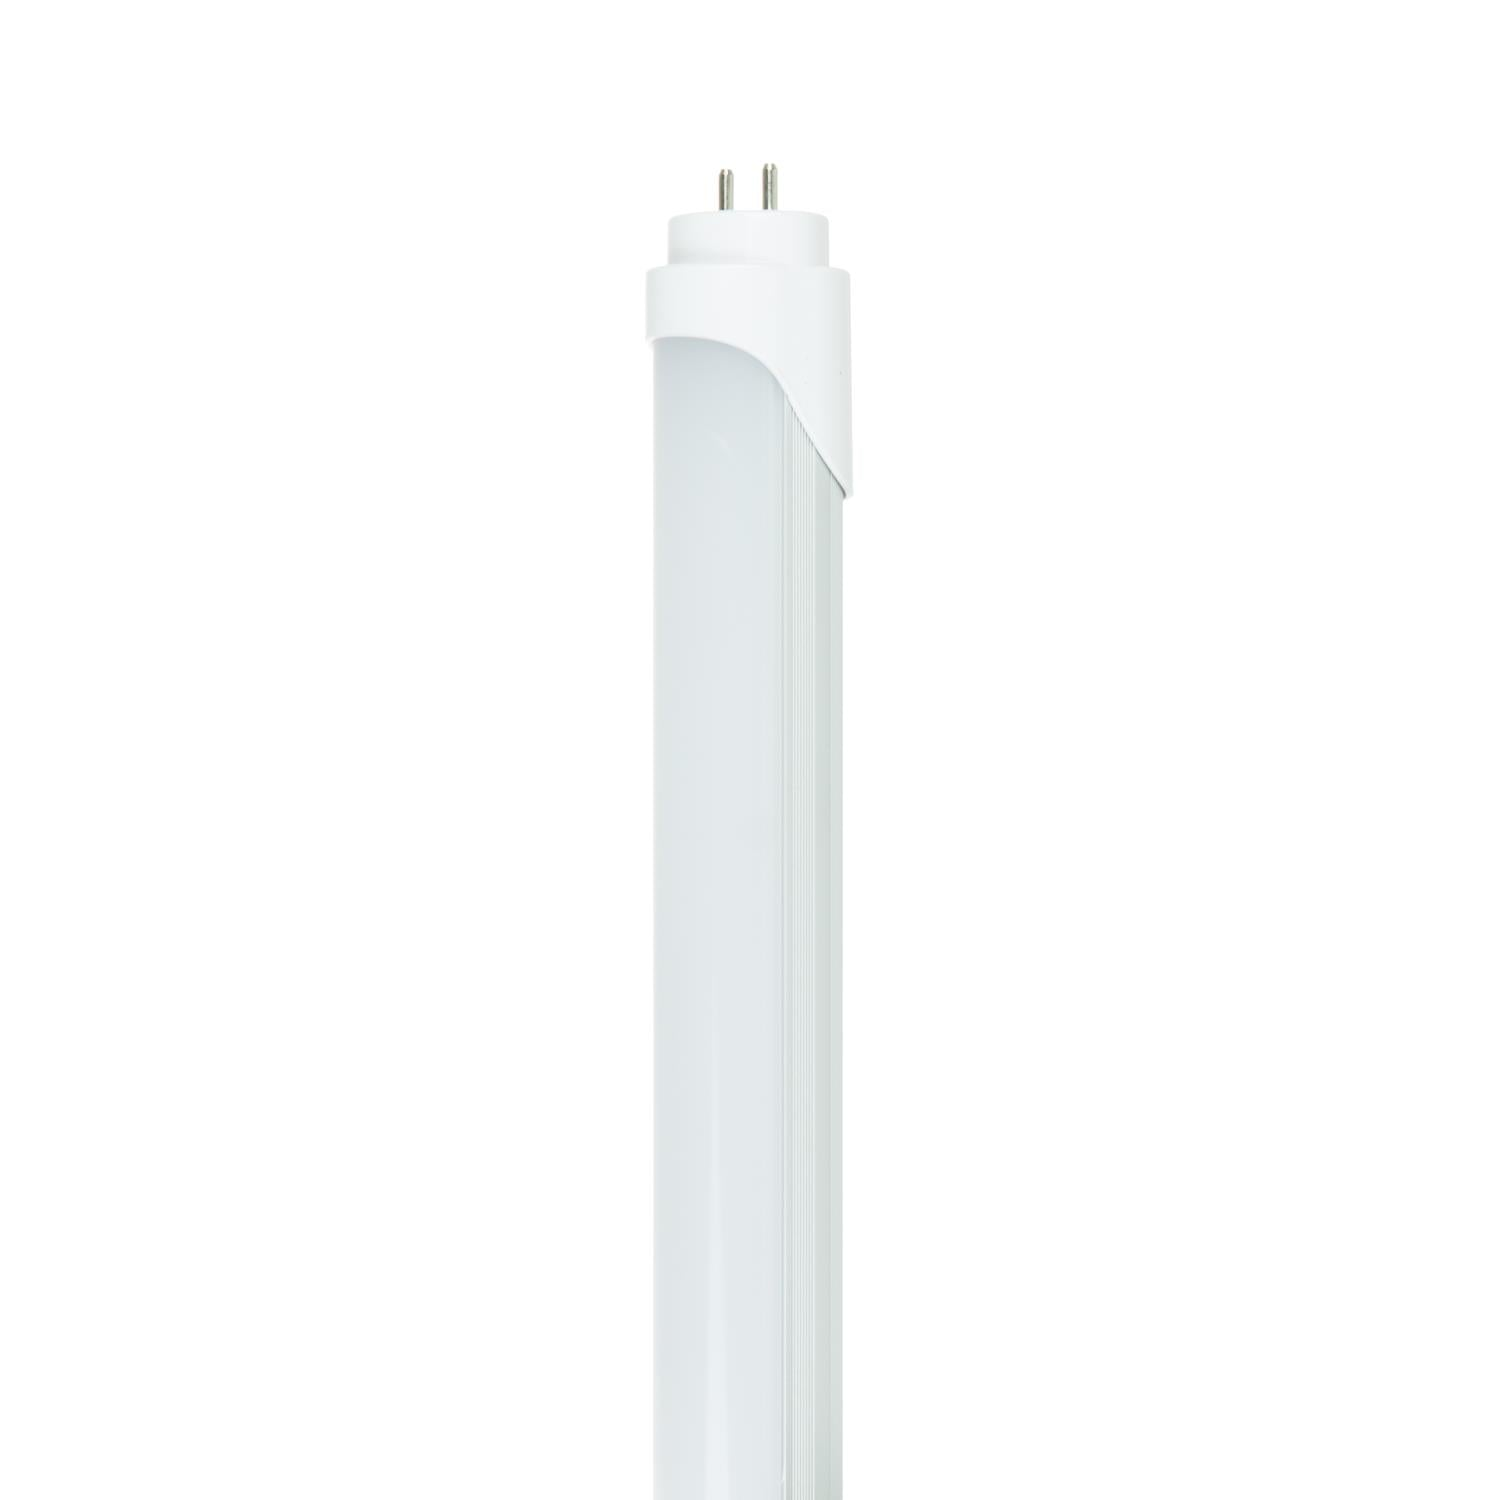 Sunlite 88022-SU LED Bypass 22w Light Bulb Medium Bi-Pin (G13) Base Warm White